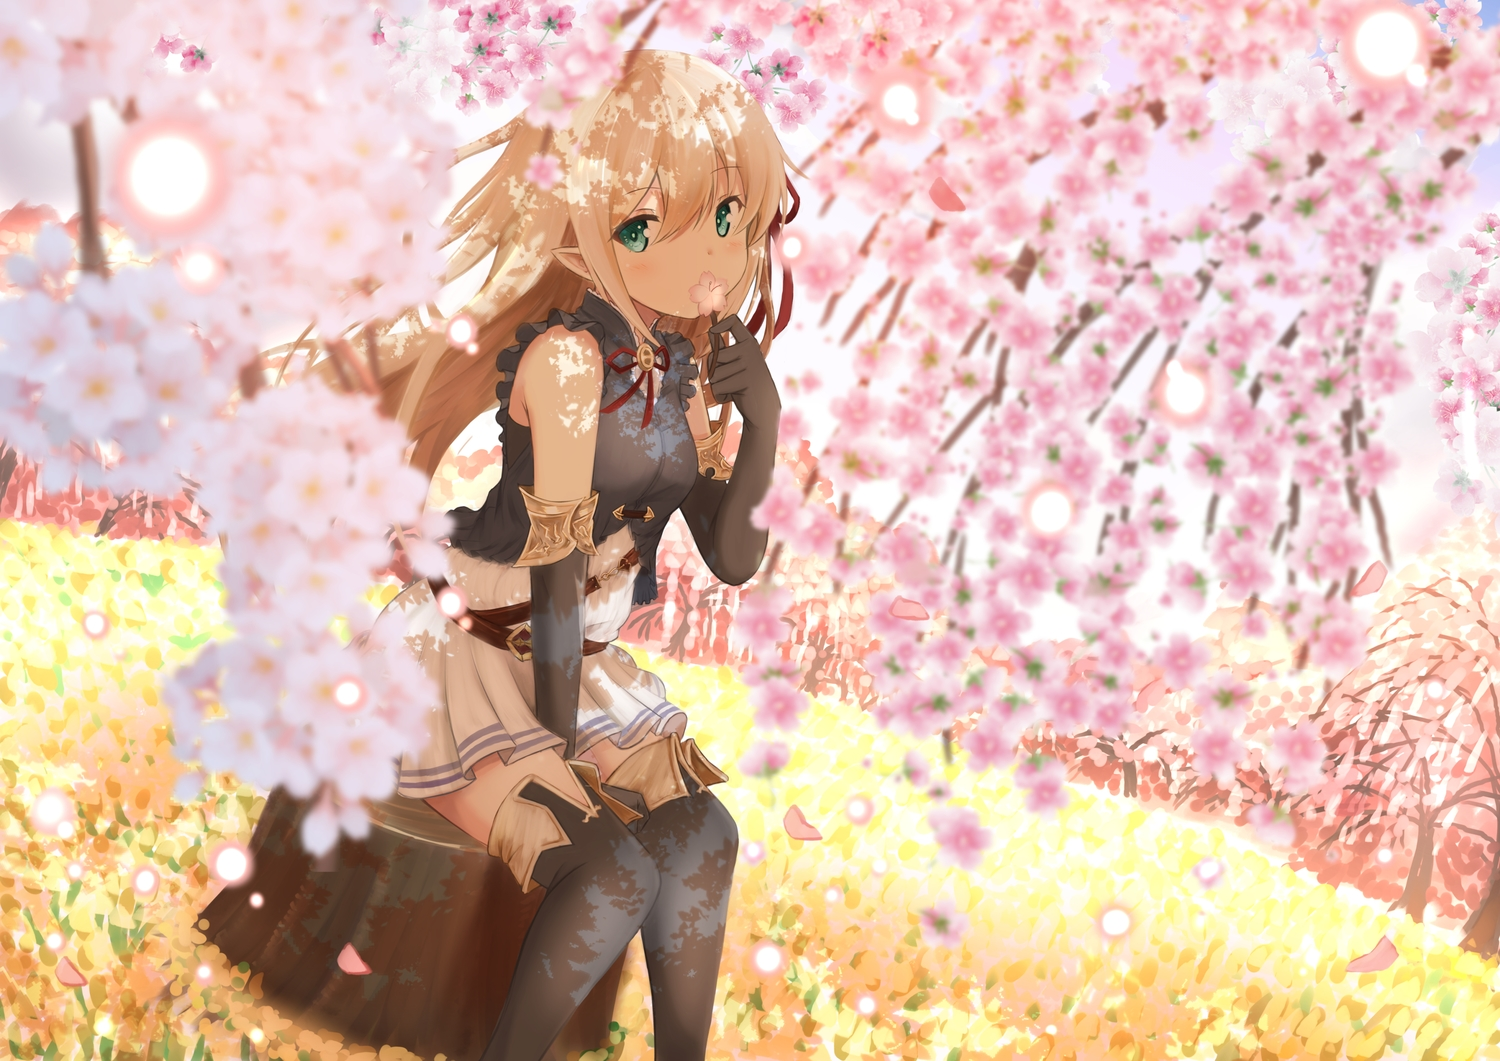 arisa_(shadowverse) blonde_hair boots cherry_blossoms elbow_gloves flowers gloves green_eyes long_hair pointed_ears ribbons shadowverse shibakame skirt thighhighs